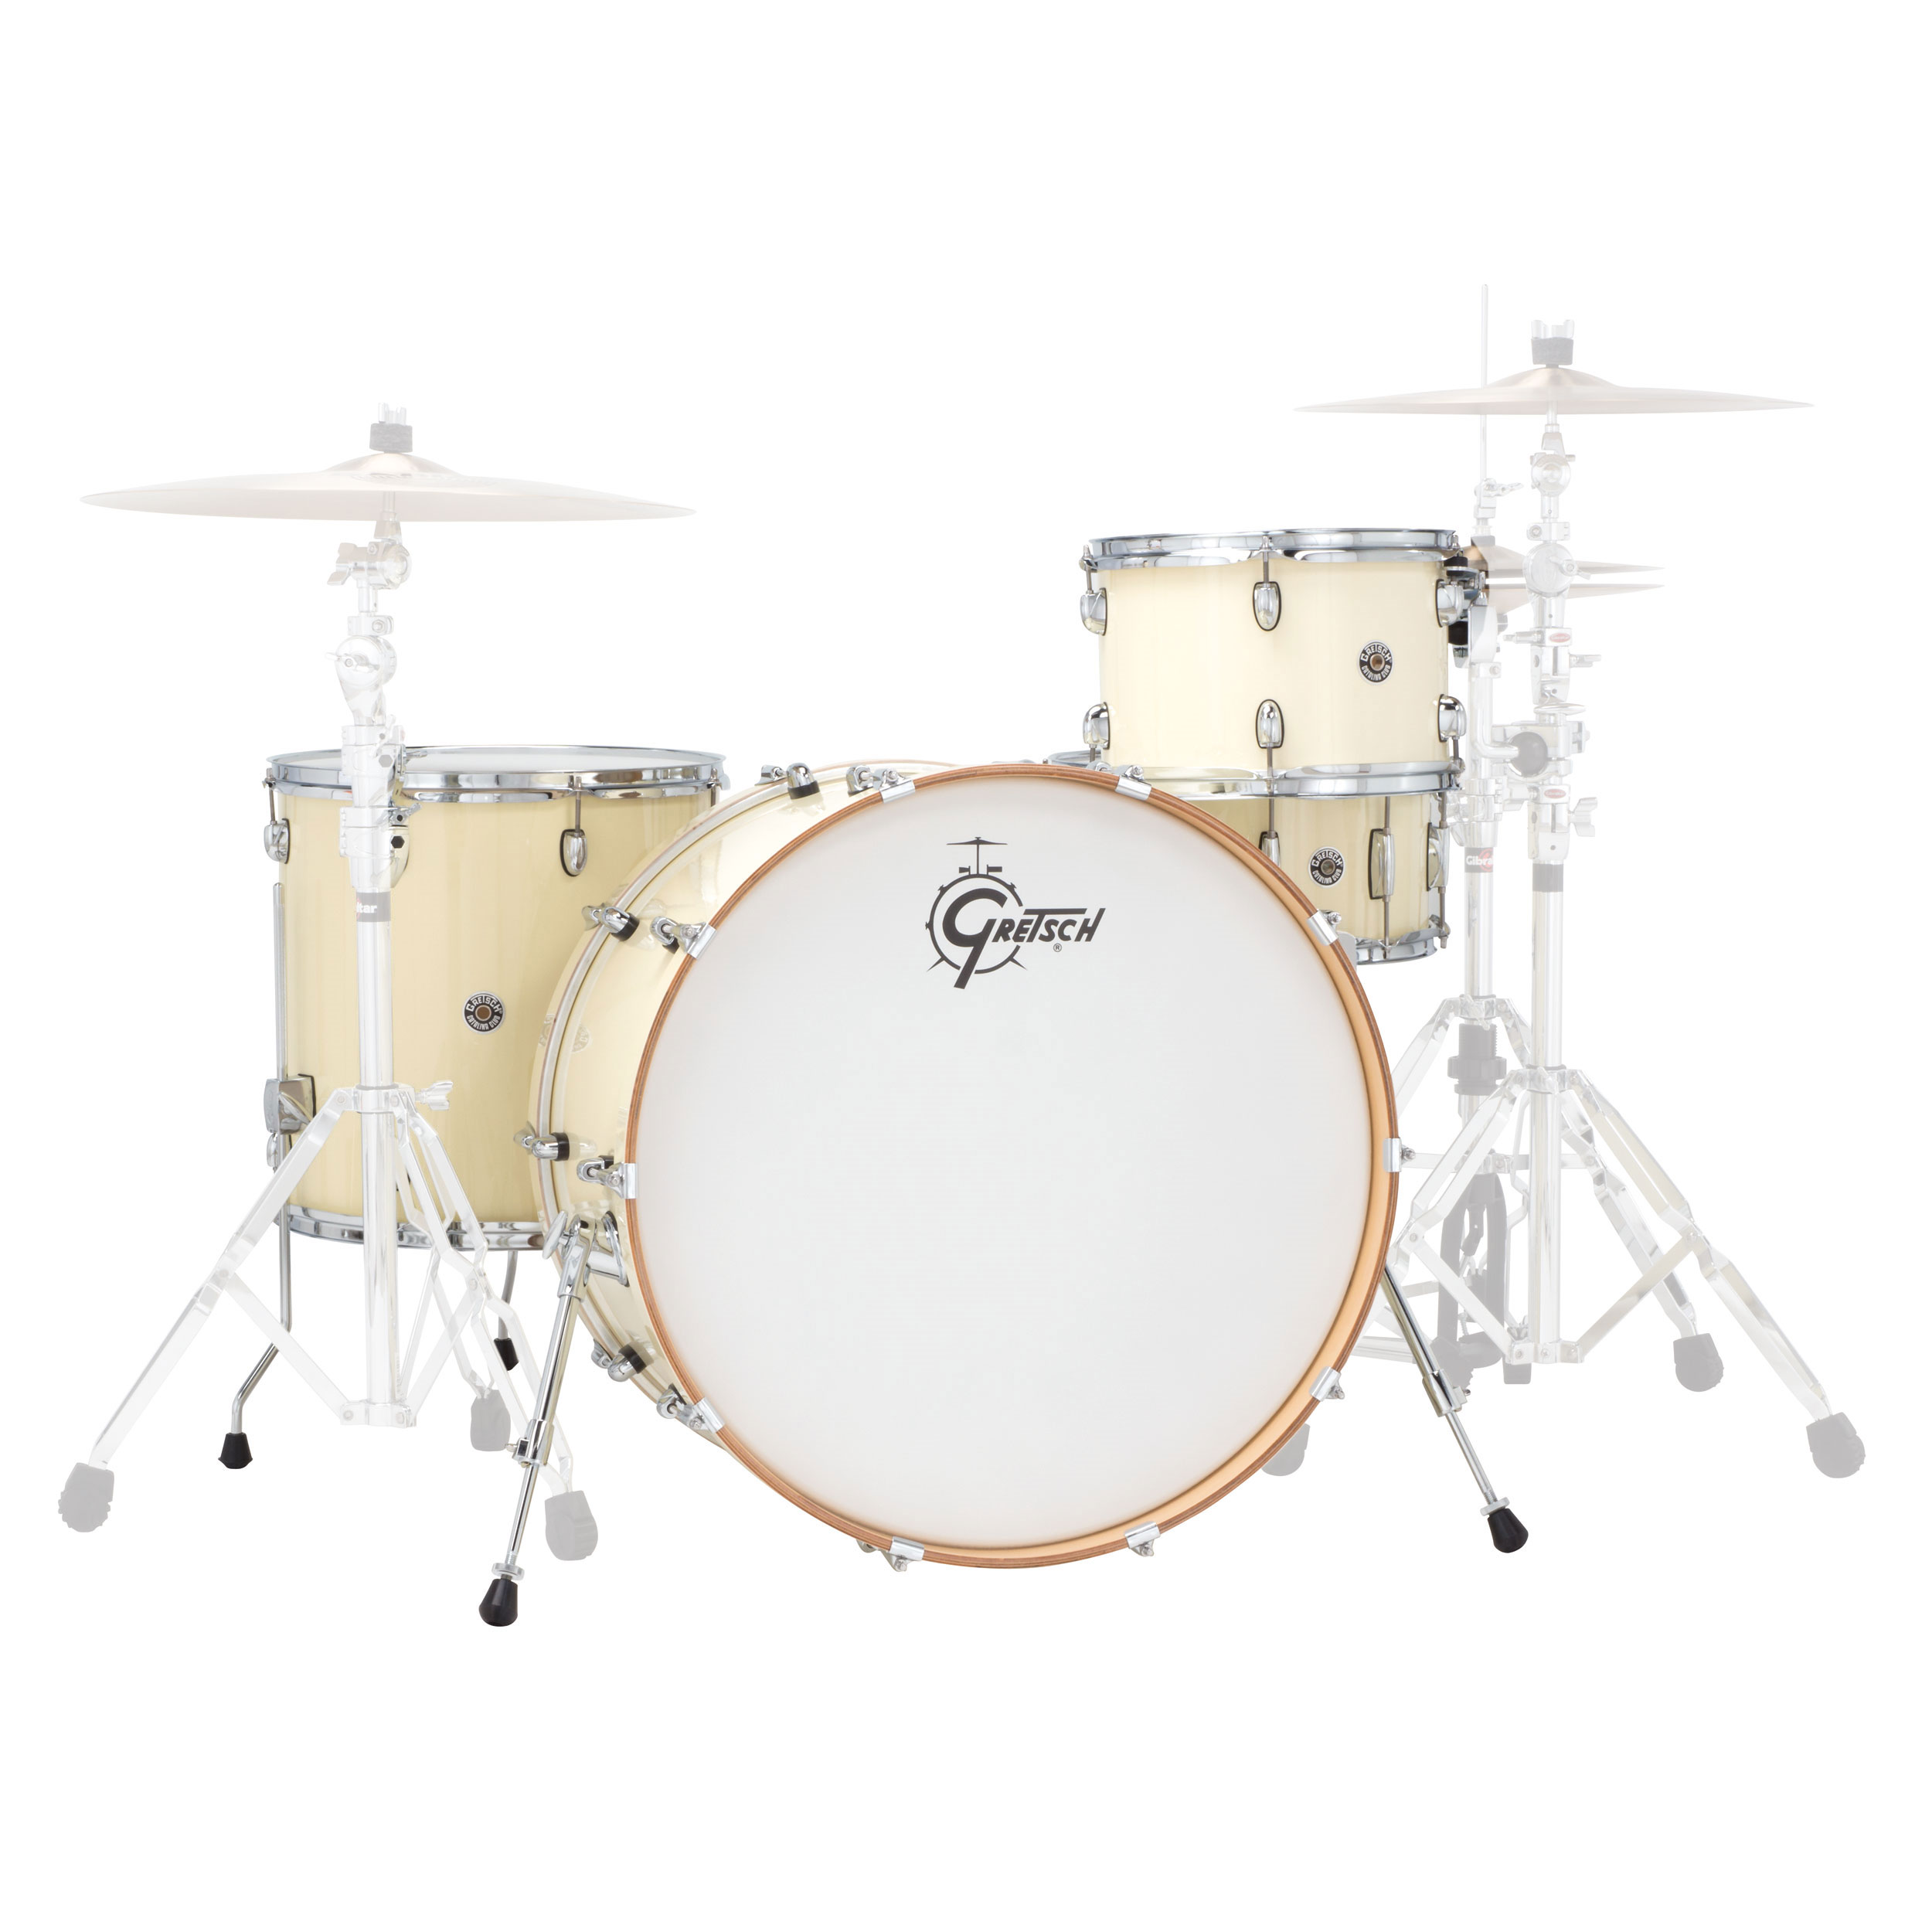 "Gretsch Catalina Club Rock 4-Piece Drum Set Shell Pack (24"" Bass, 13/16"" Toms, 14"" Snare) with Satin Finish"